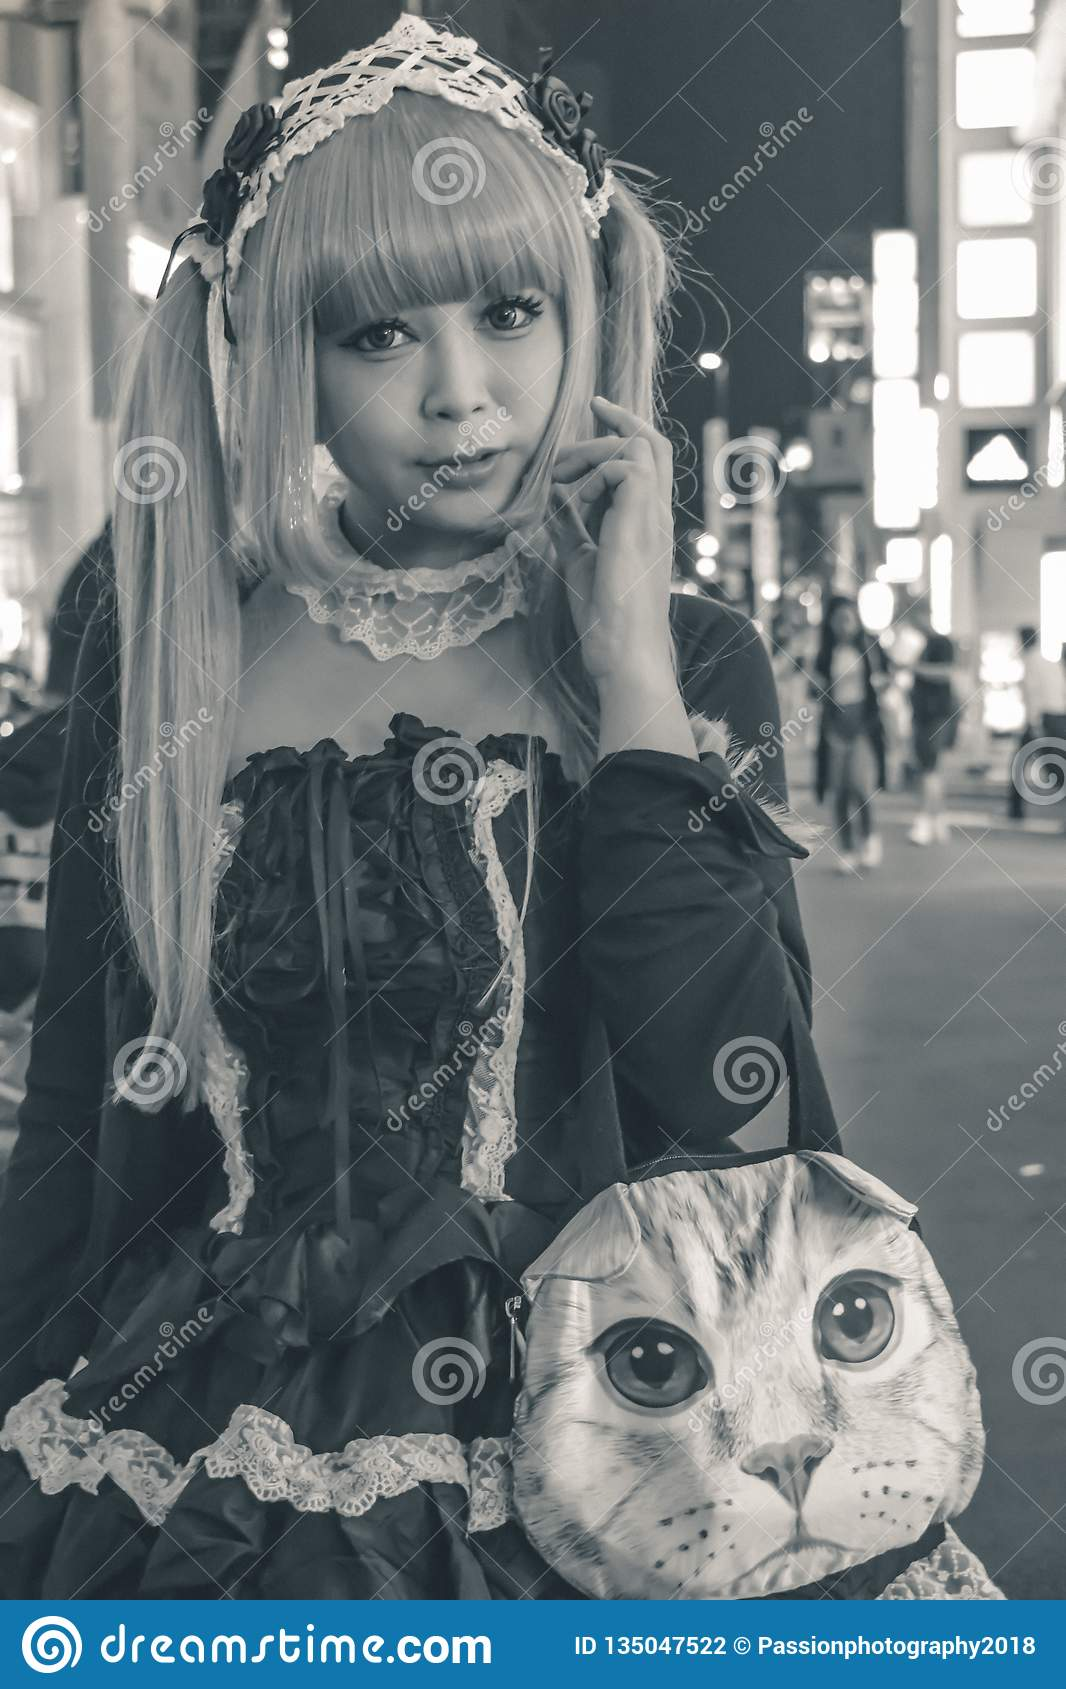 Beautiful Japanese girl in a maid costume in Tokyo